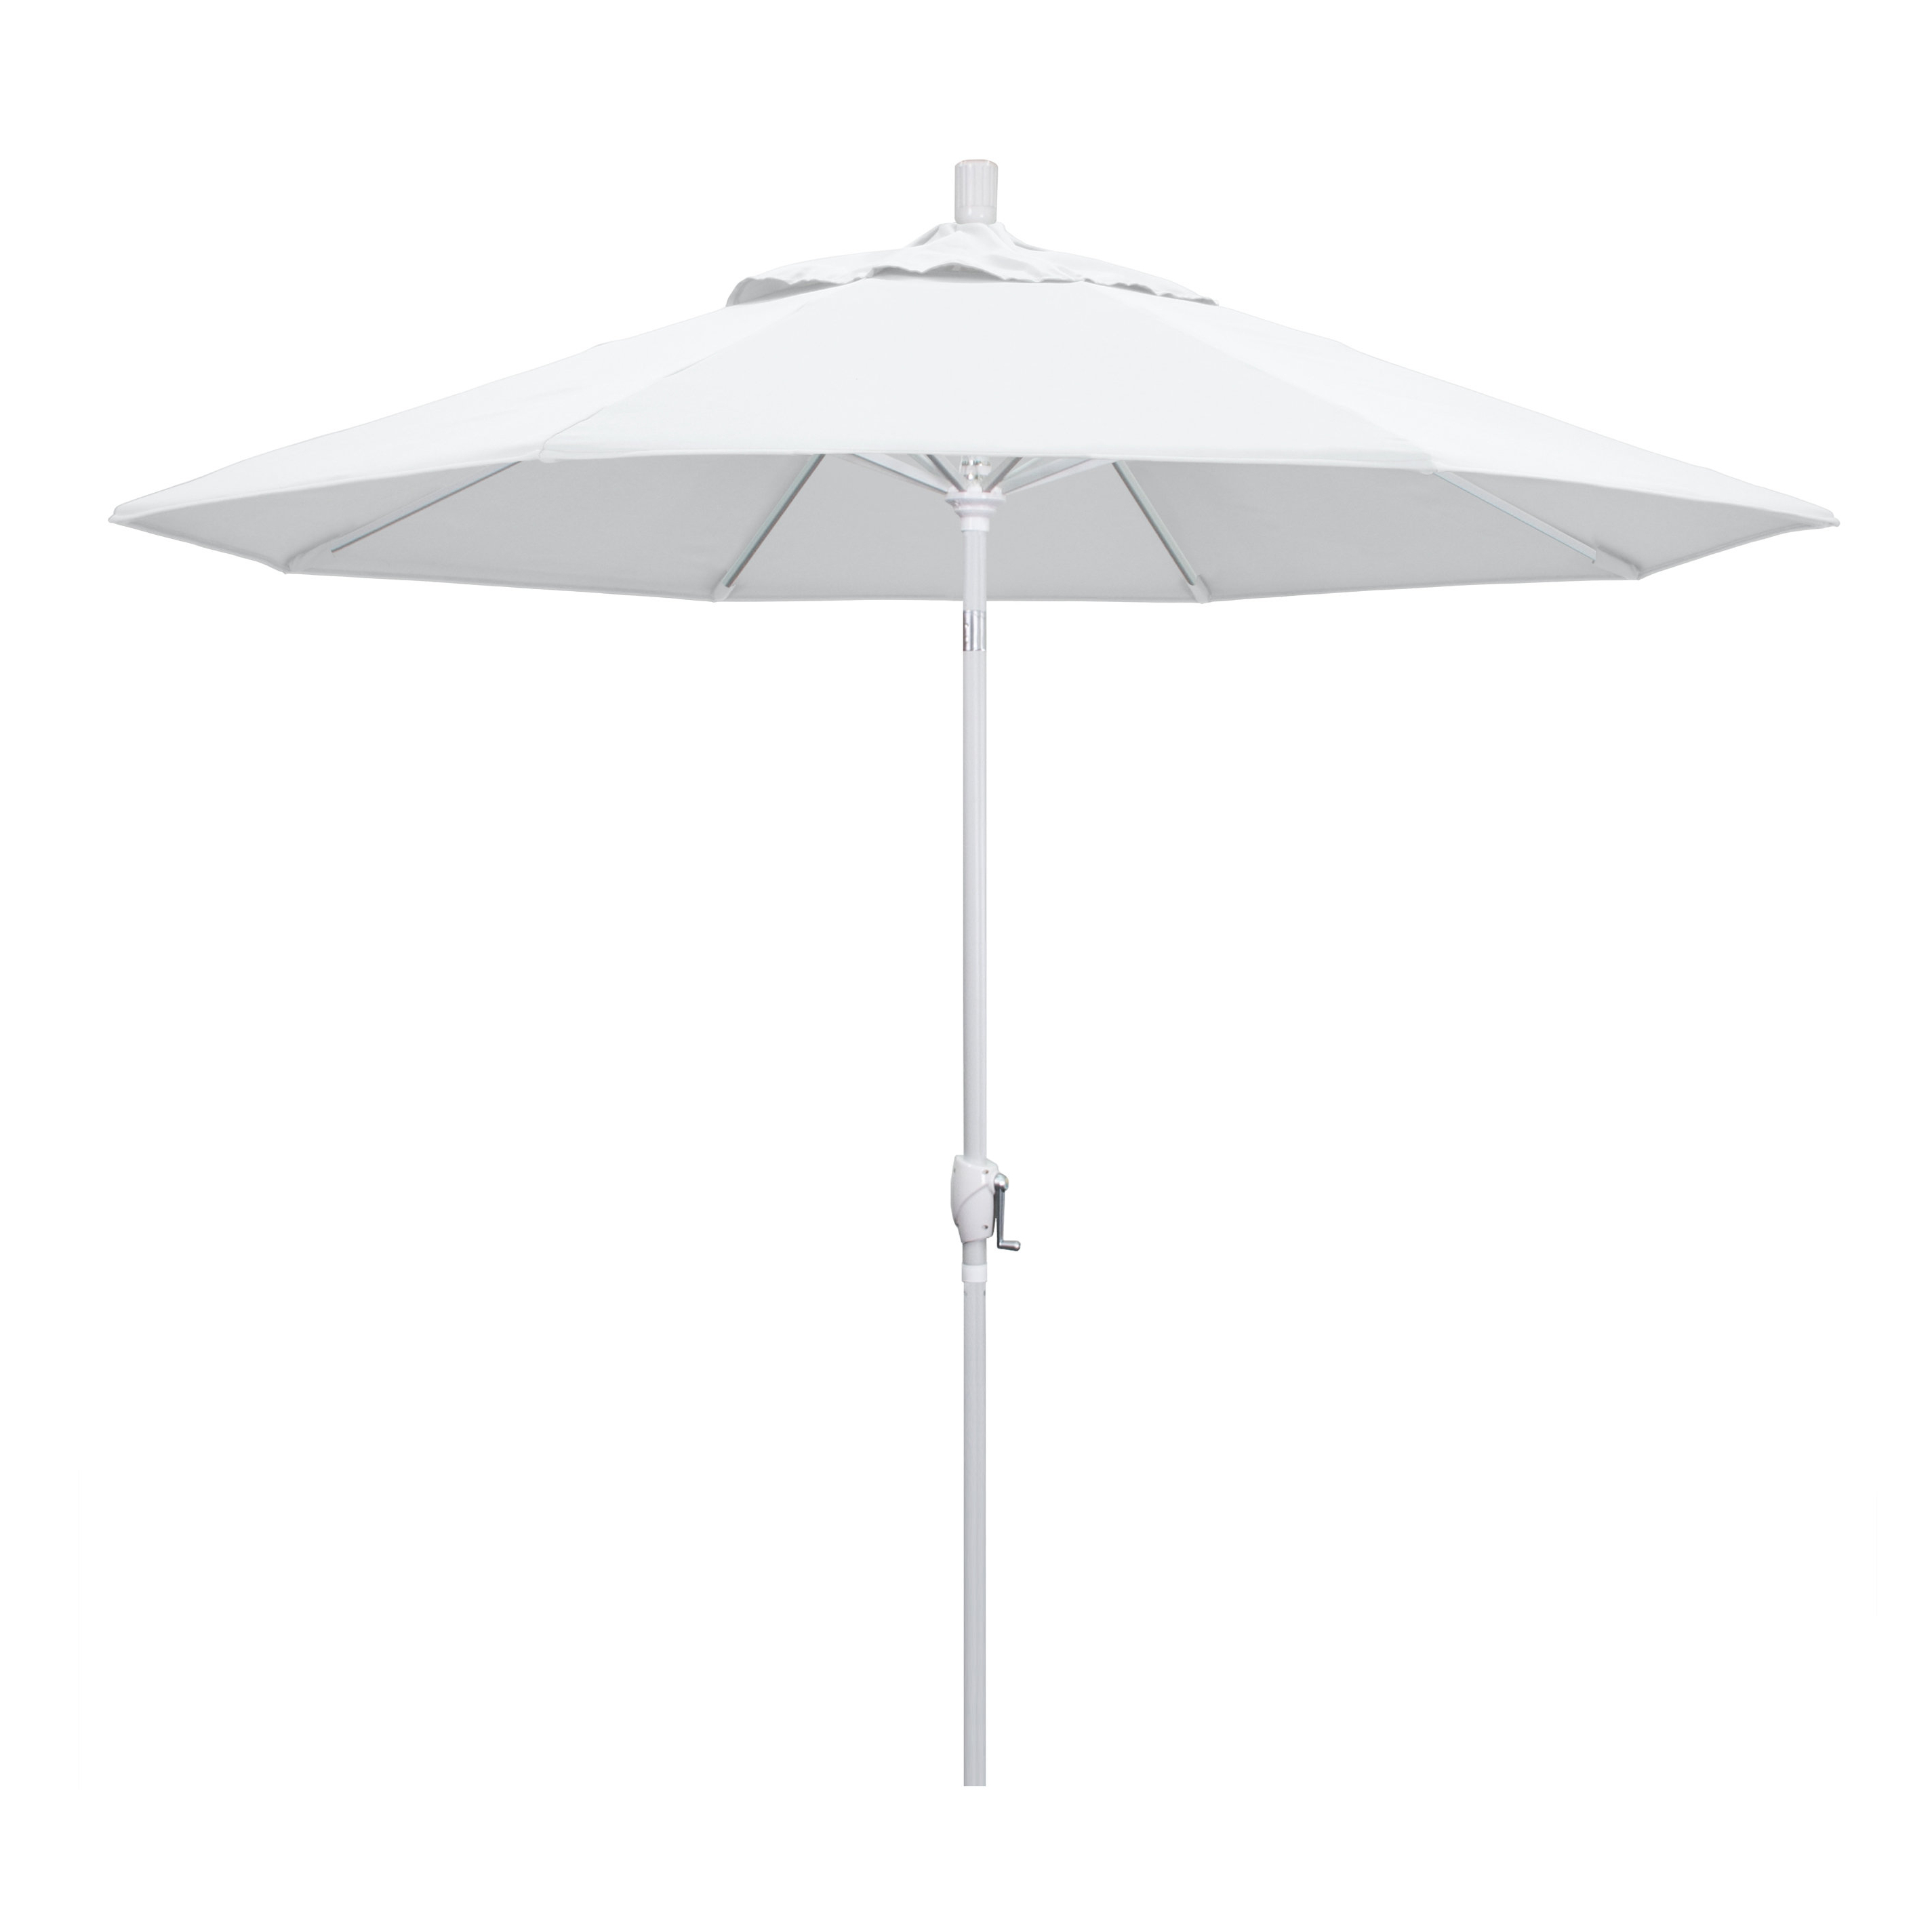 Darby Home Co Wallach 9' Market Umbrella Throughout Most Recently Released Monty Half Market Umbrellas (View 15 of 20)